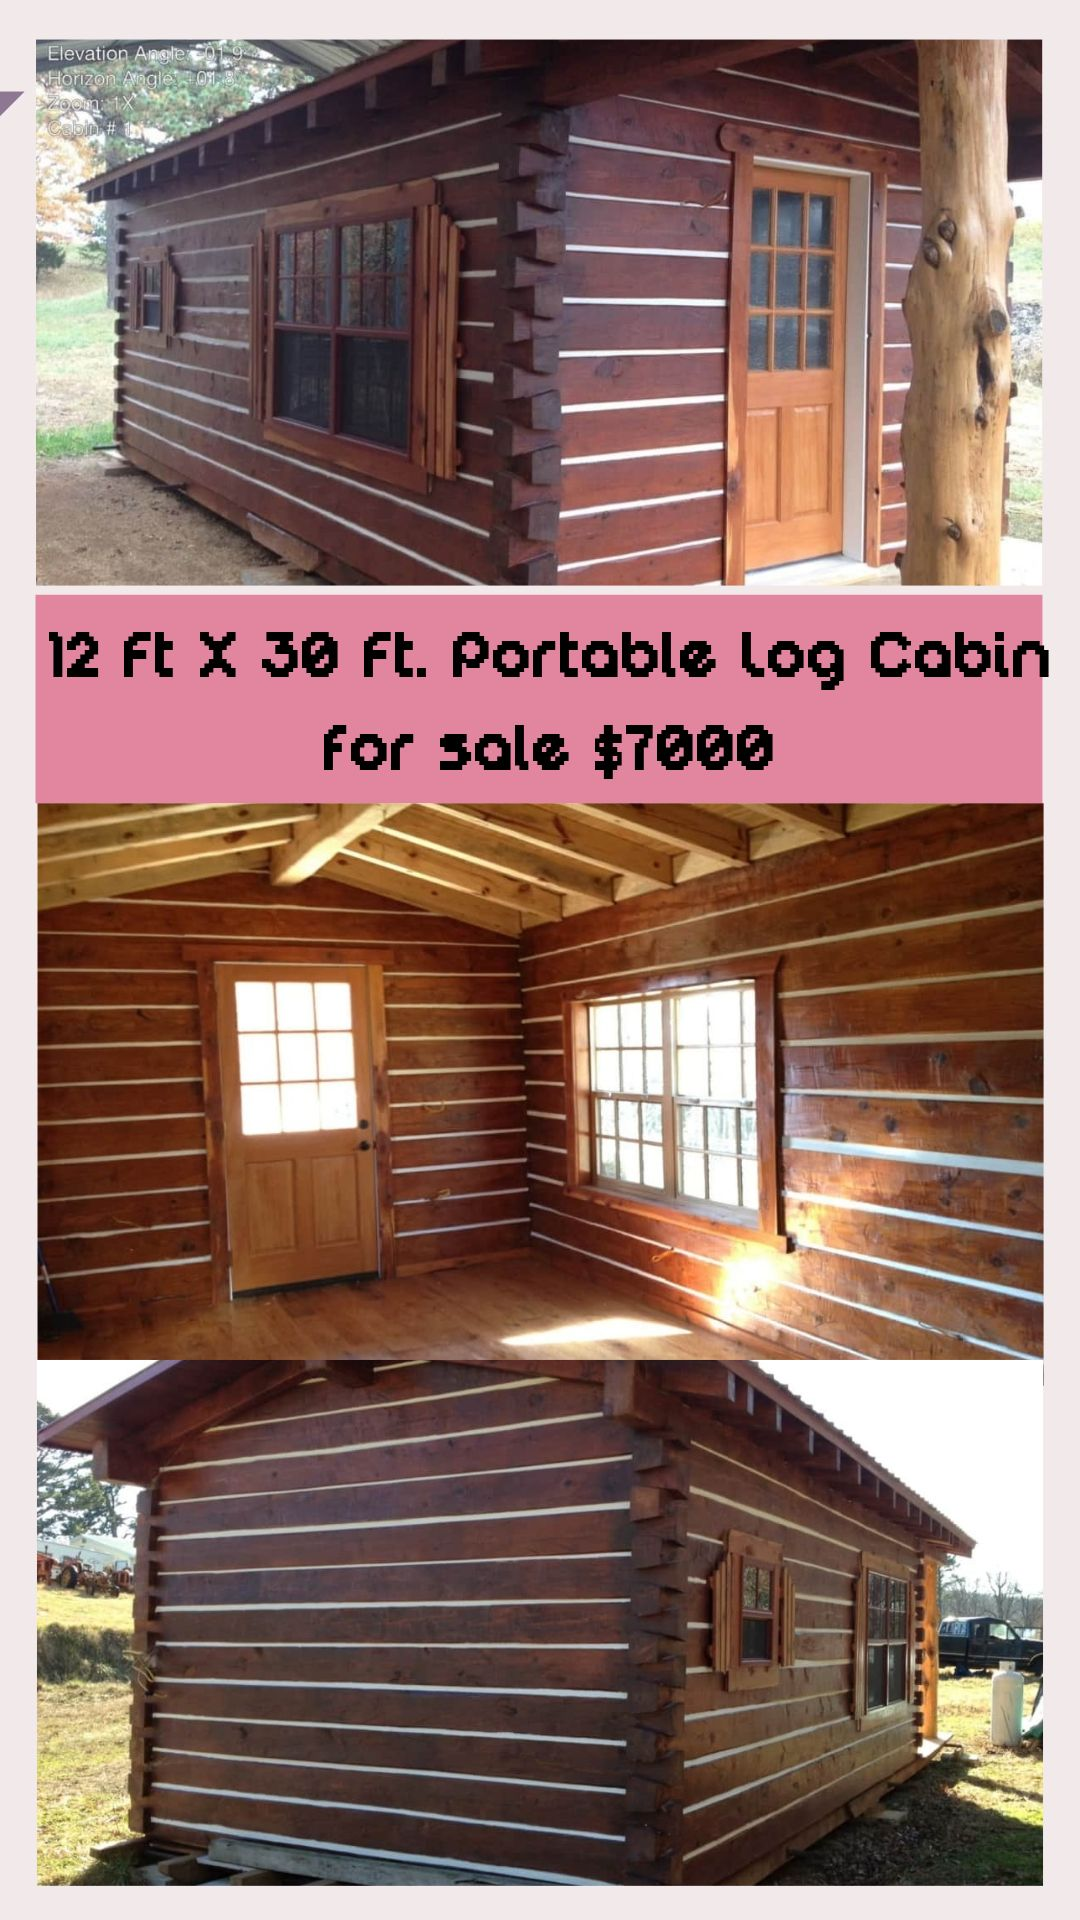 12 Ft X 30 Ft Portable Log Cabin For Sale 7000 Log Cabins For Sale Cabins For Sale Tiny Log Cabins